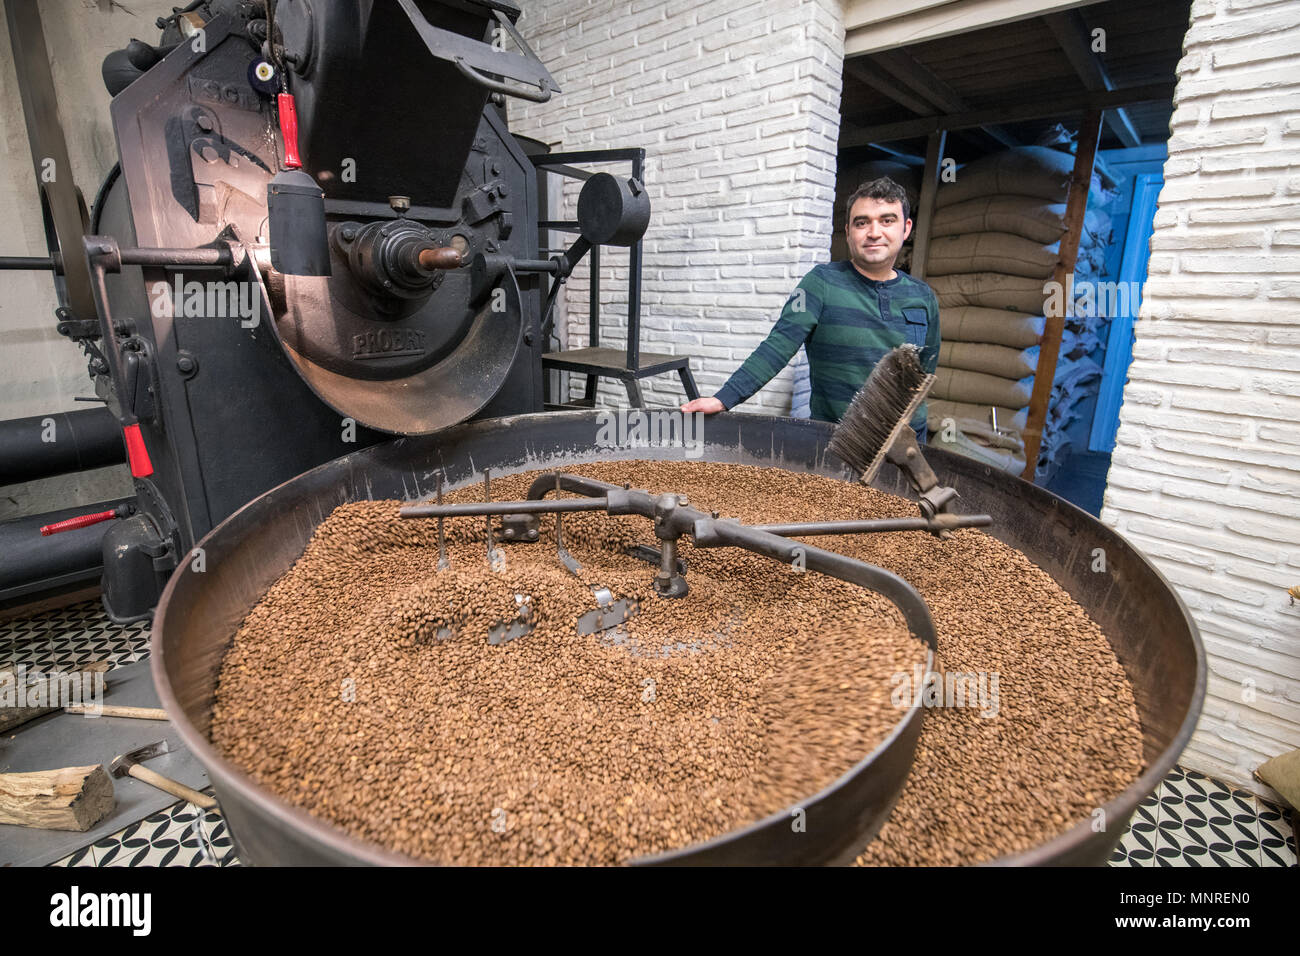 Adult male leans against coffee bean roaster as a mechanical arm slowly rotates freshly roasted coffee beans to cool them down, Istanbul, Turkey. Stock Photo